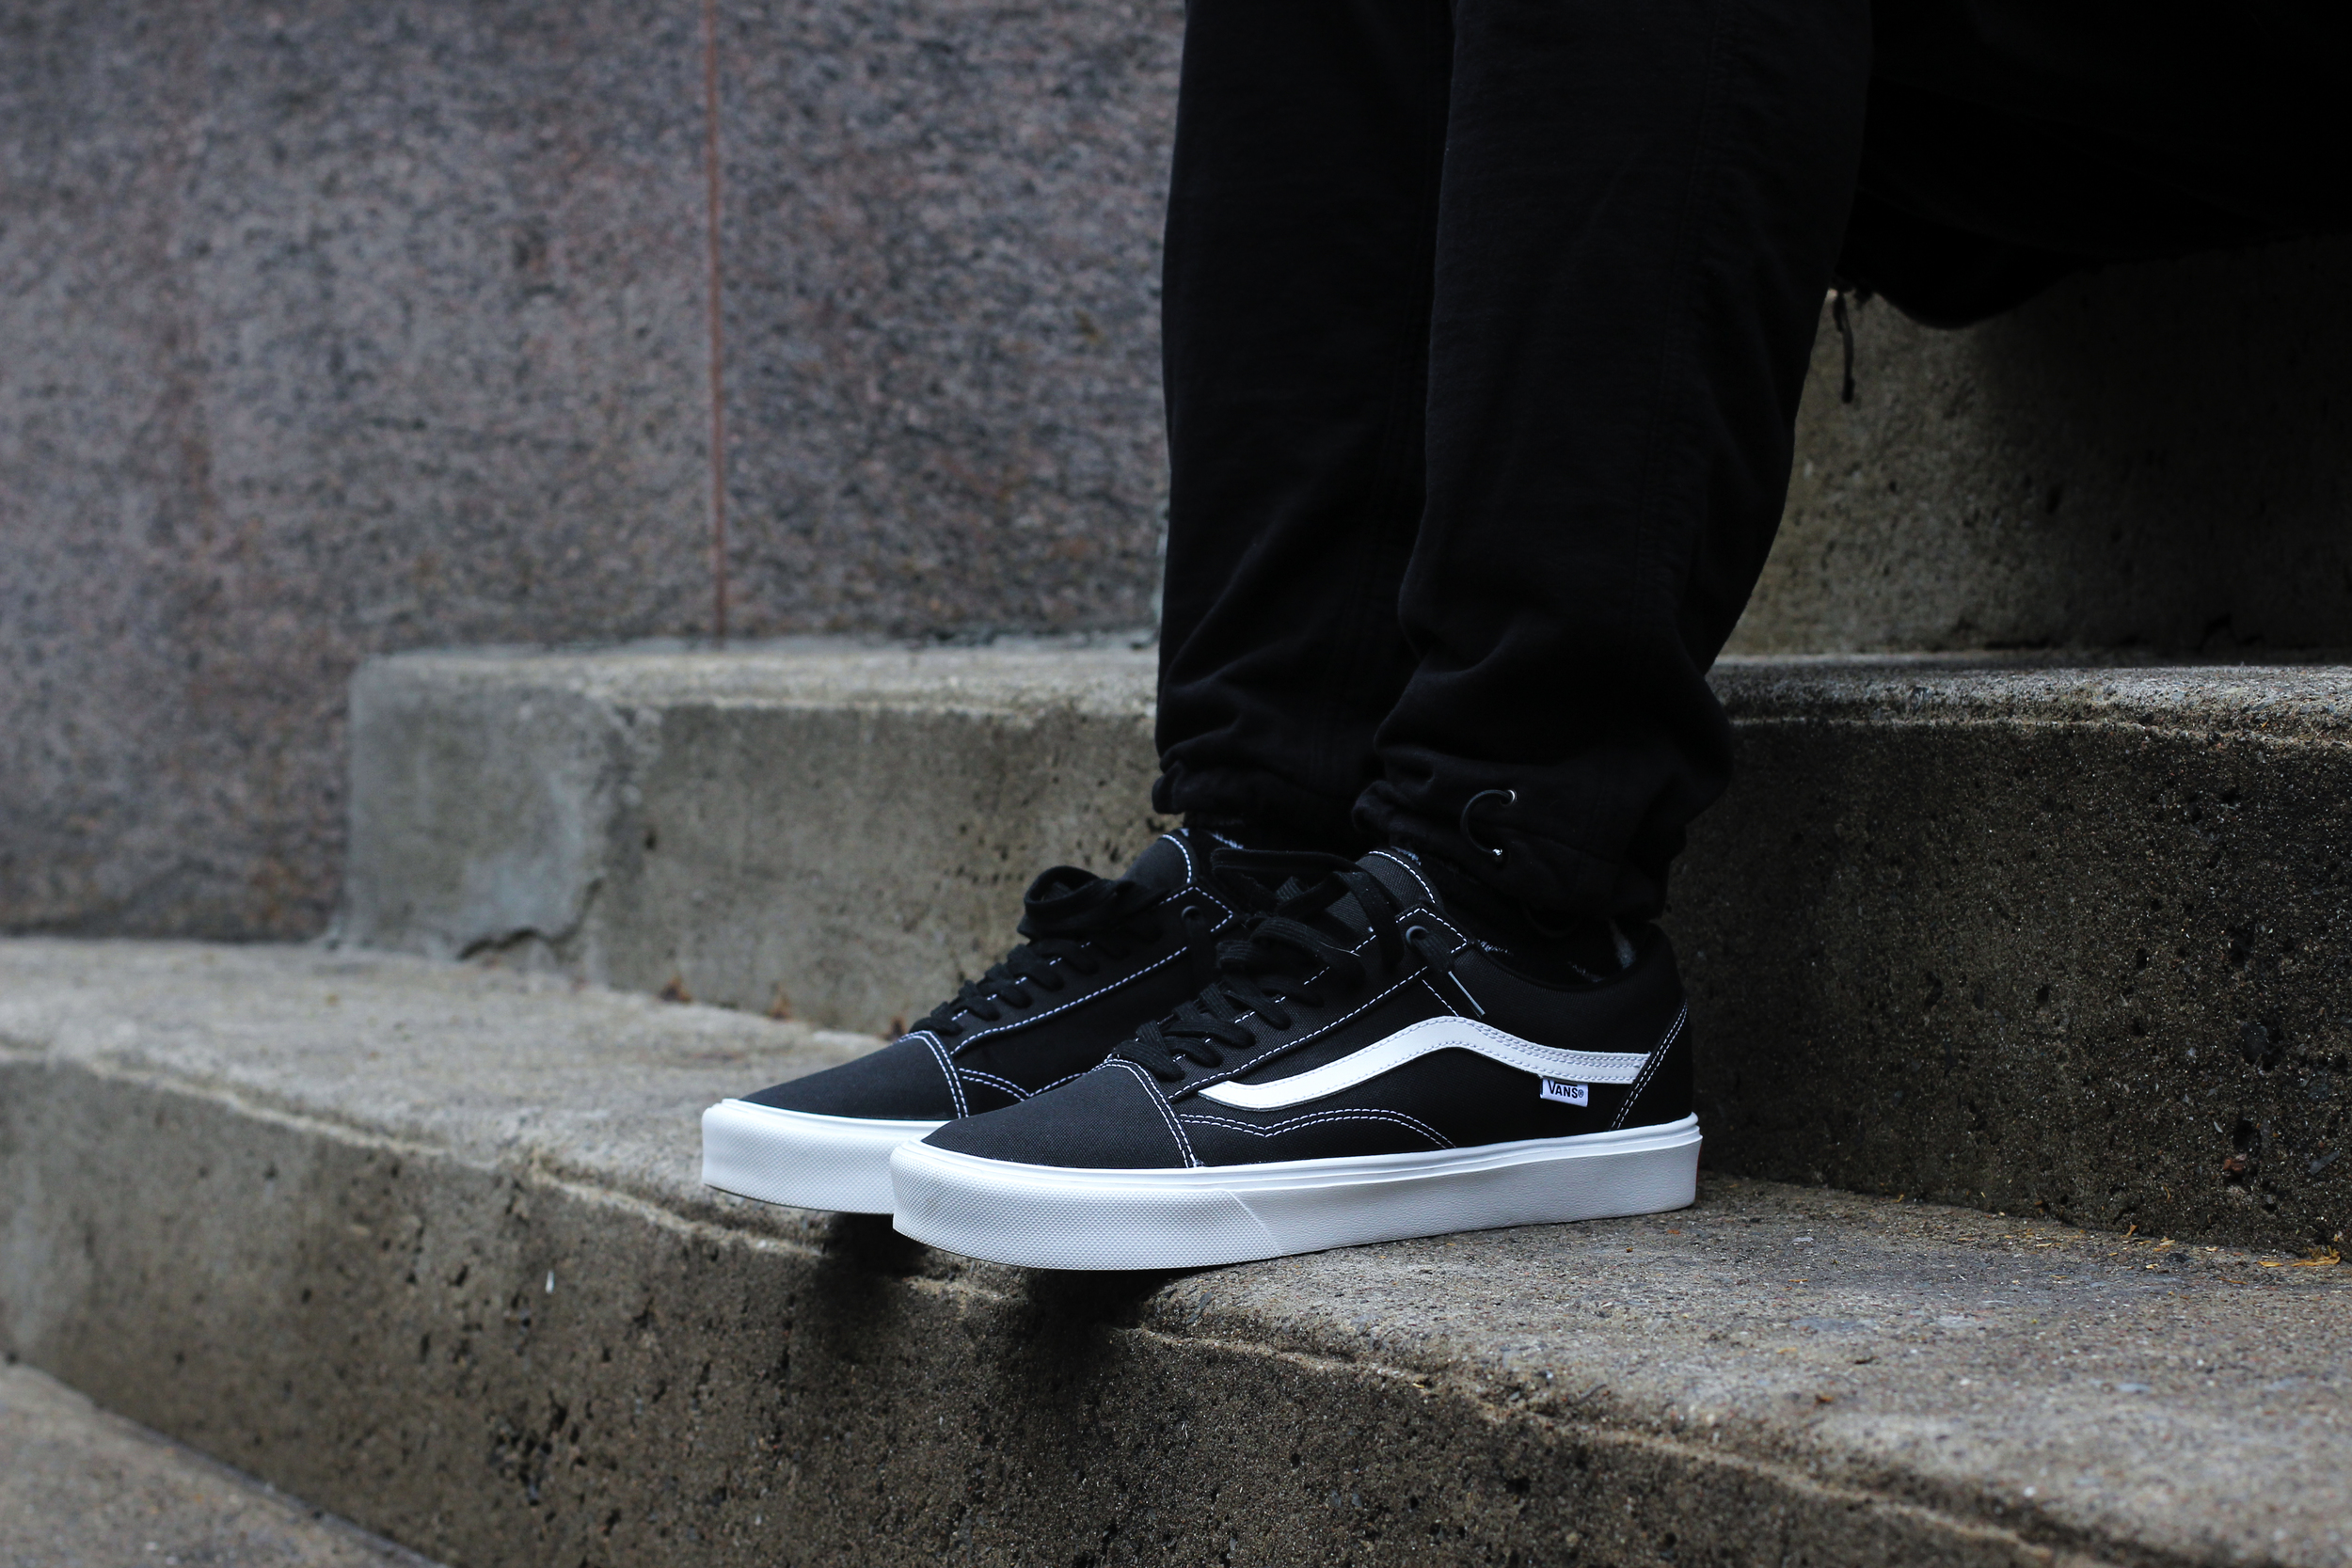 7. Vans Old Skool Lite